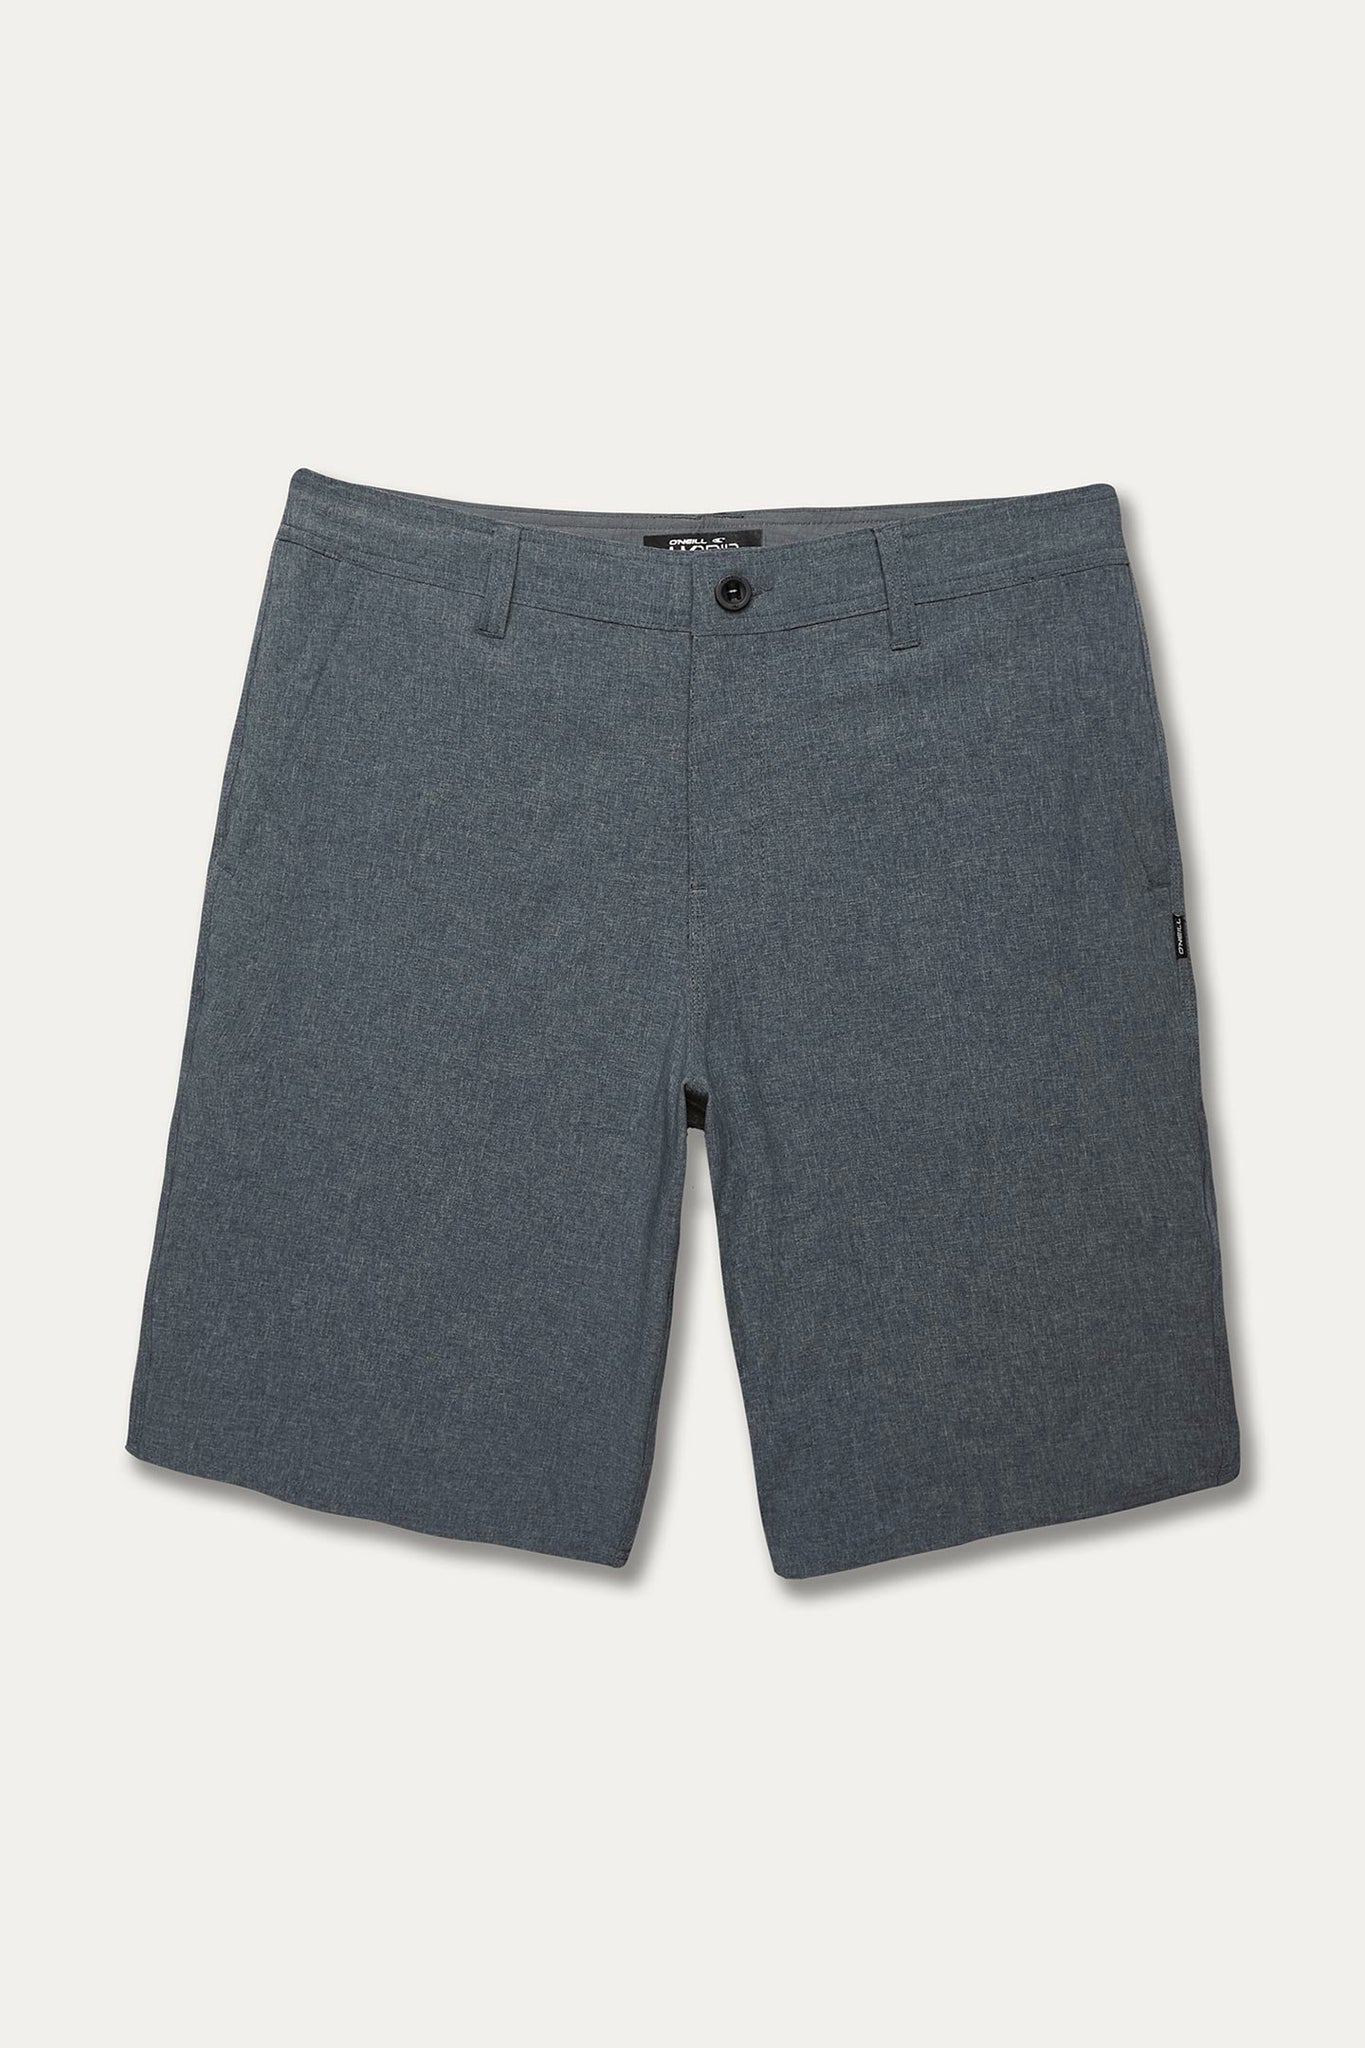 Little Boys Reserve Heather Hybrid Shorts - Slate | O'Neill